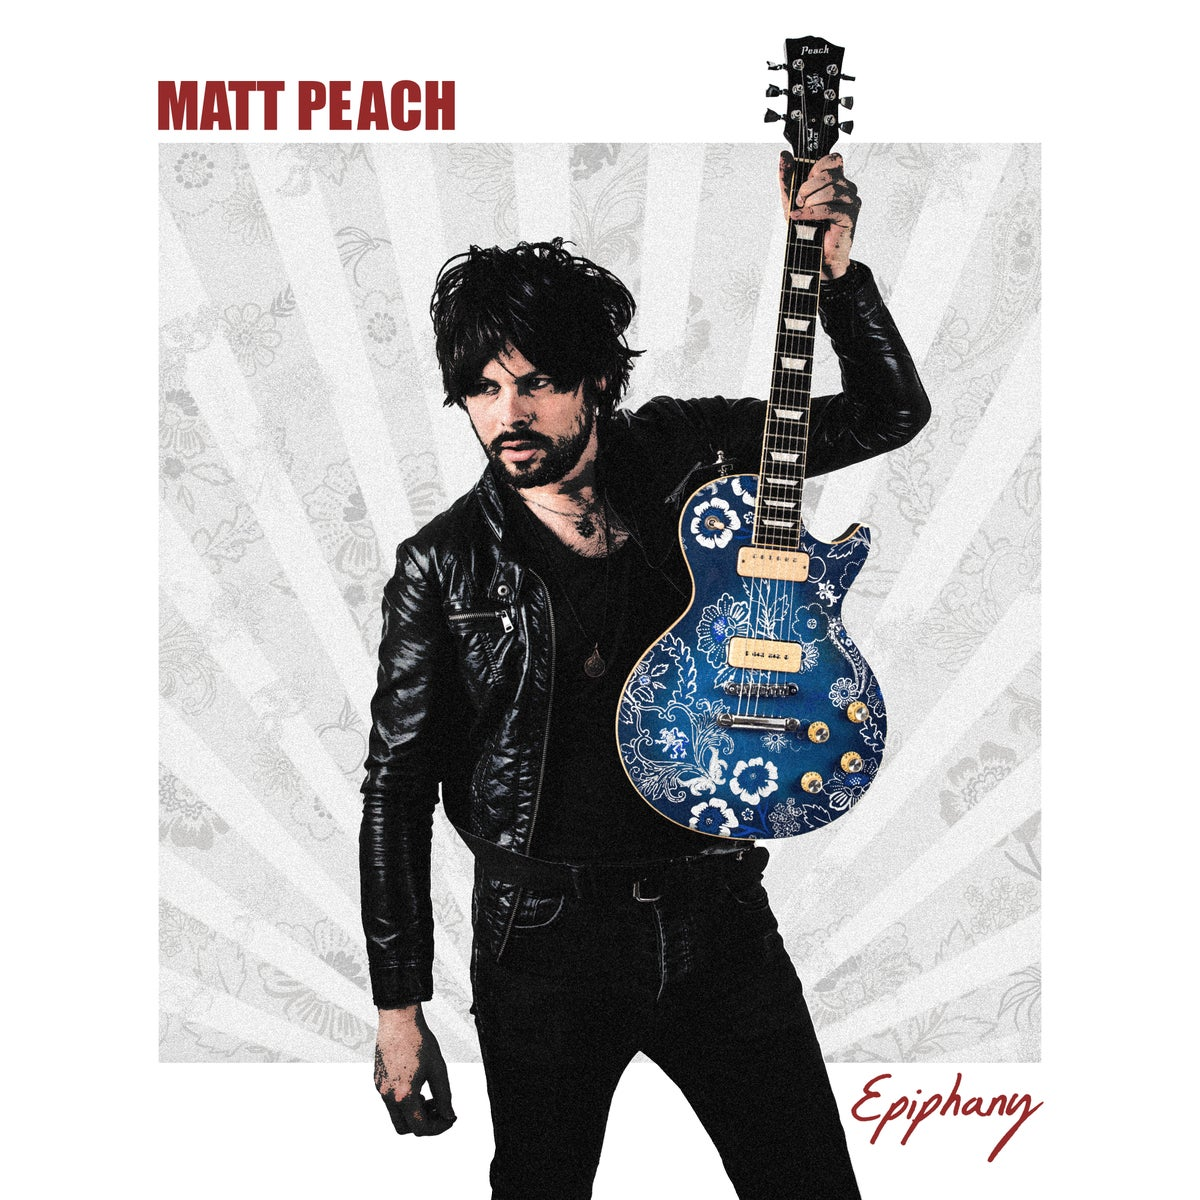 Image of Matt Peach - Epiphany - CD